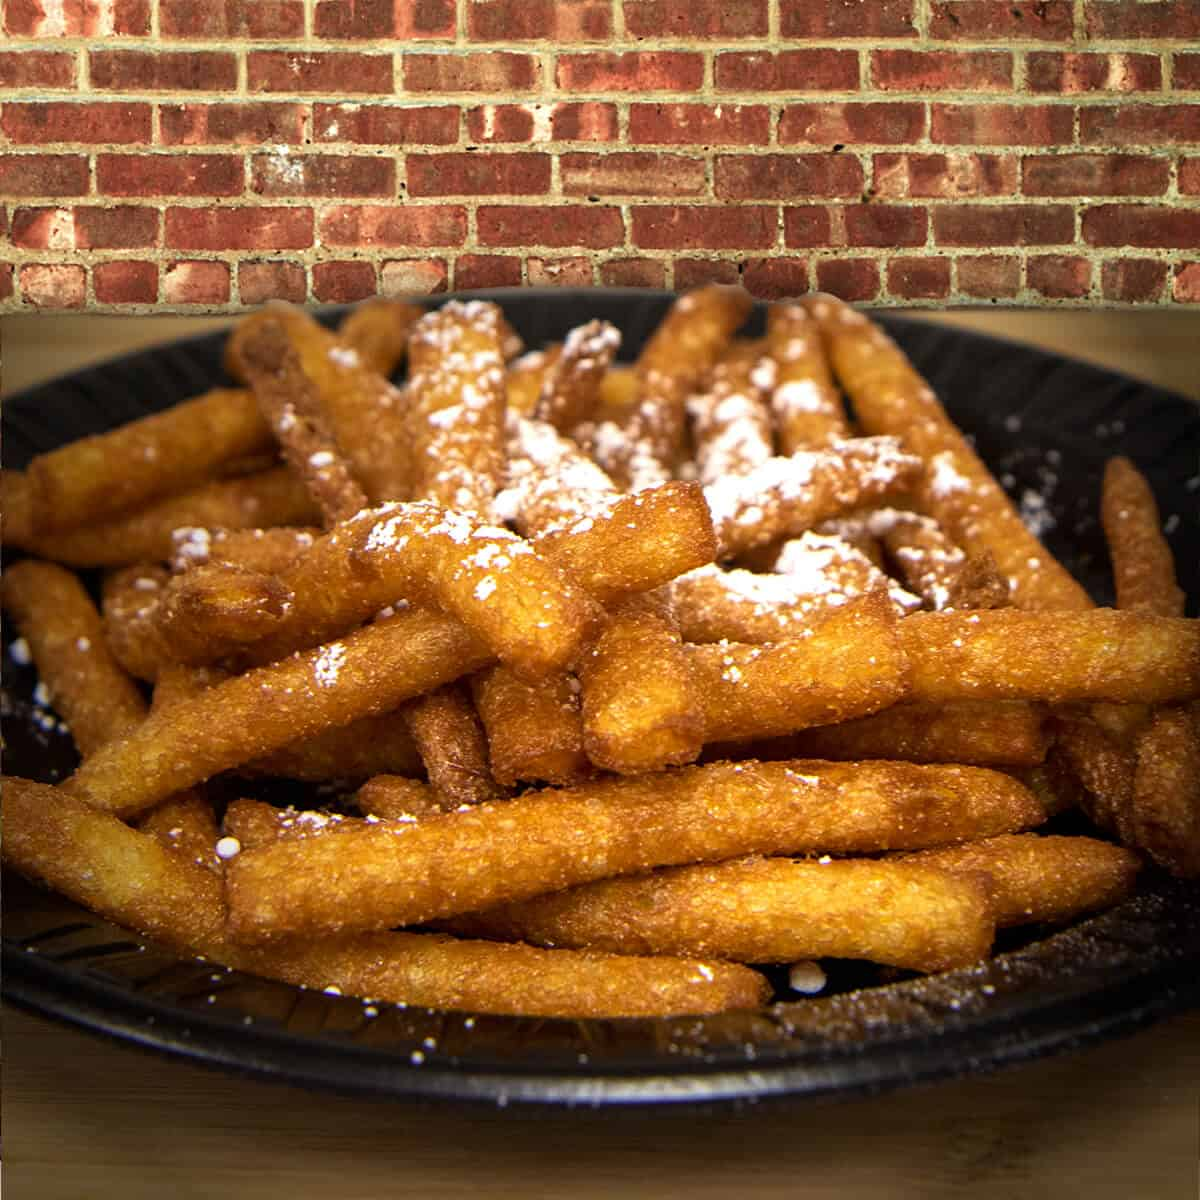 Funnel cake fries sprinkled with powdered sugar